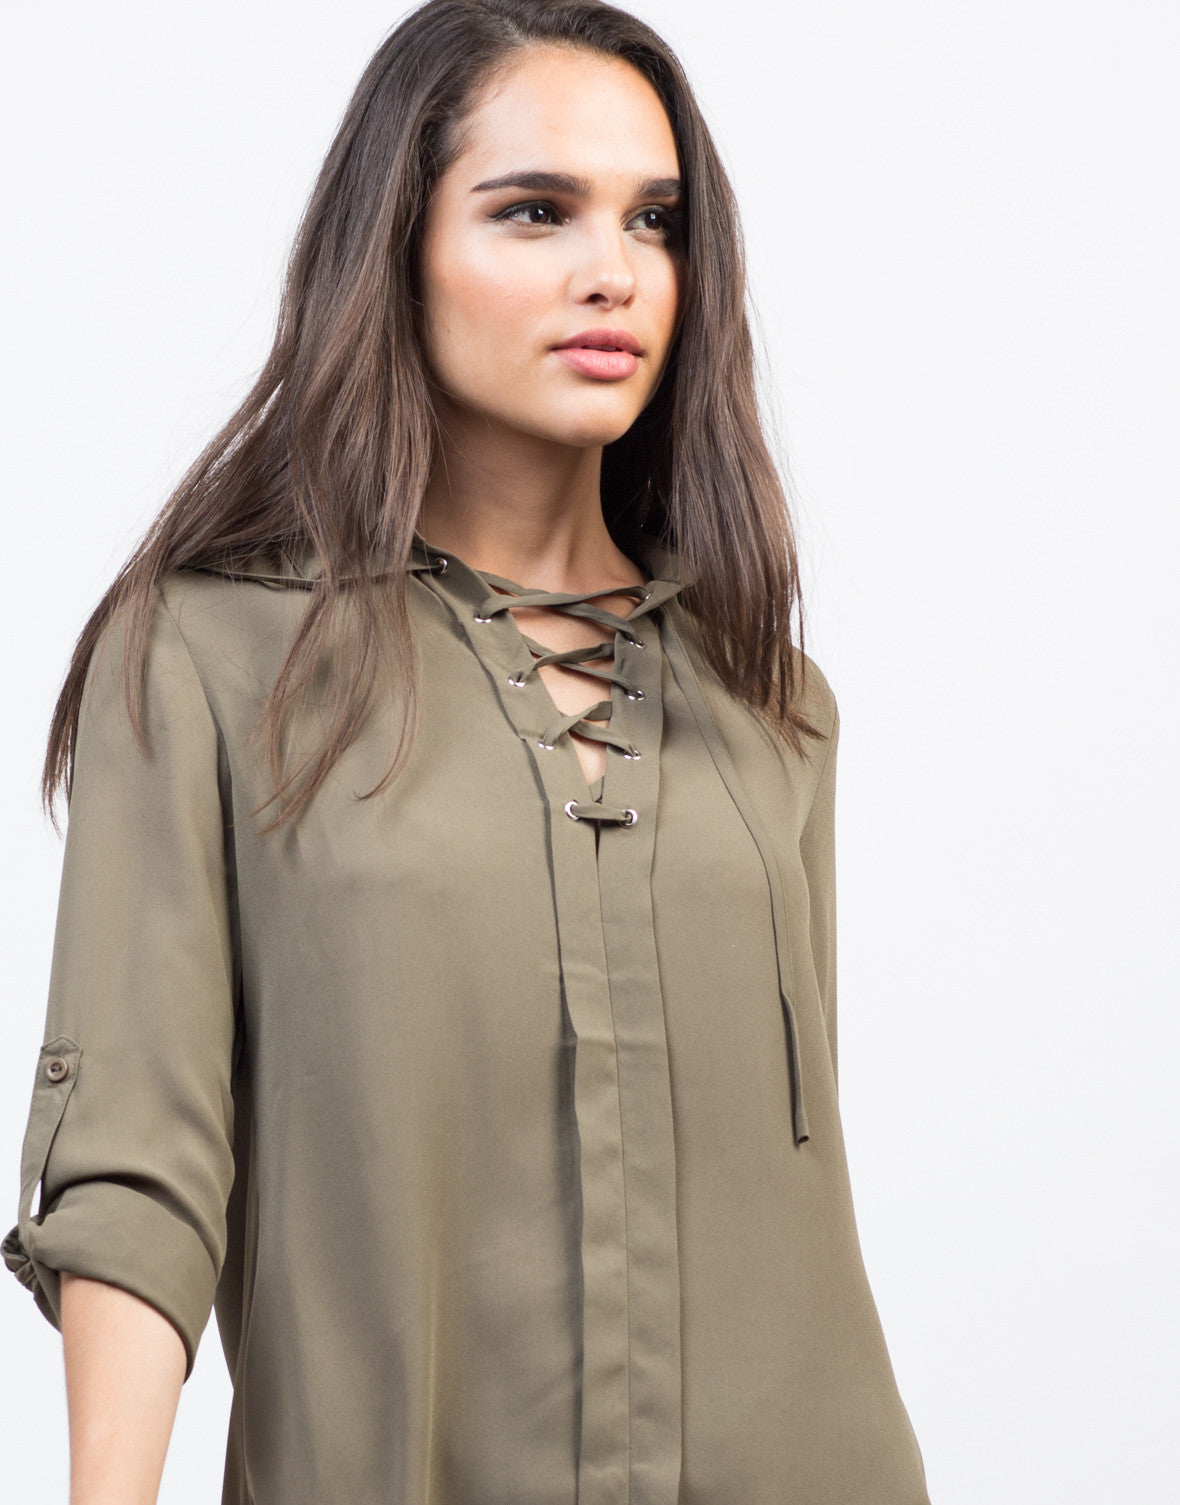 Detail of Sheer Collar Lace-Up Shirt